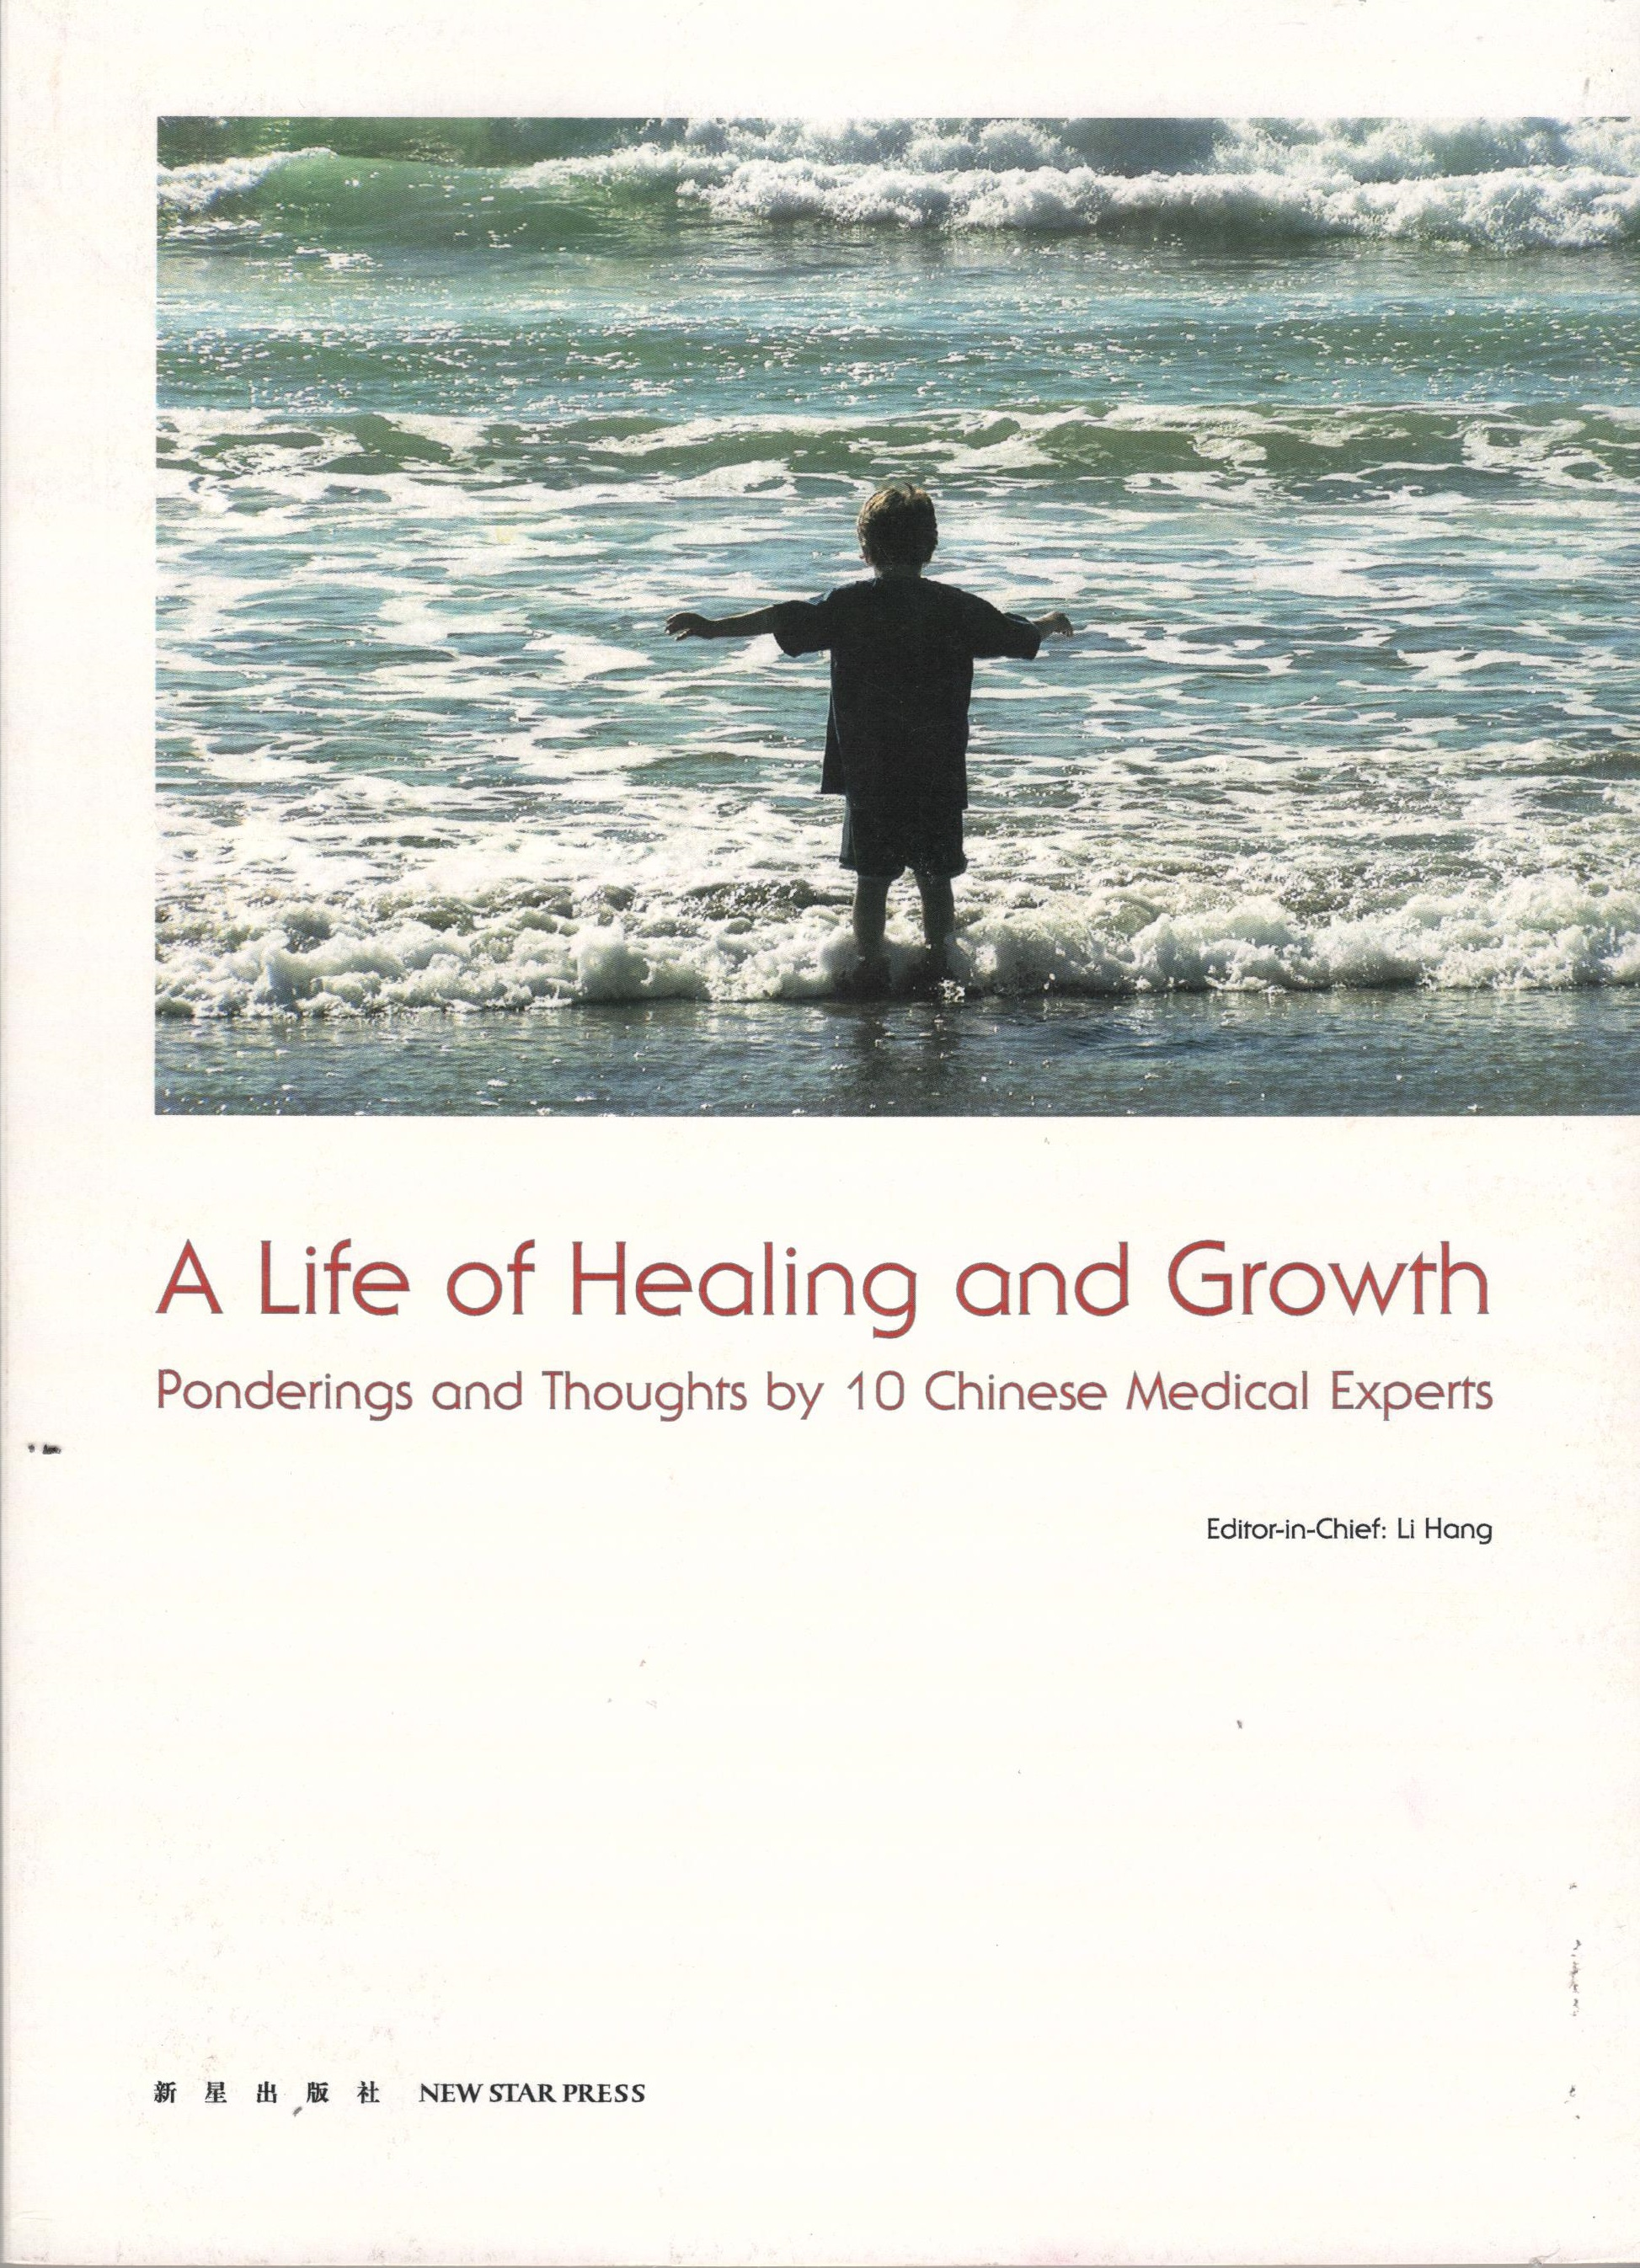 A life of Healing and Growth: Ponderings and Thoughts by 10 Chinese Medical Experts